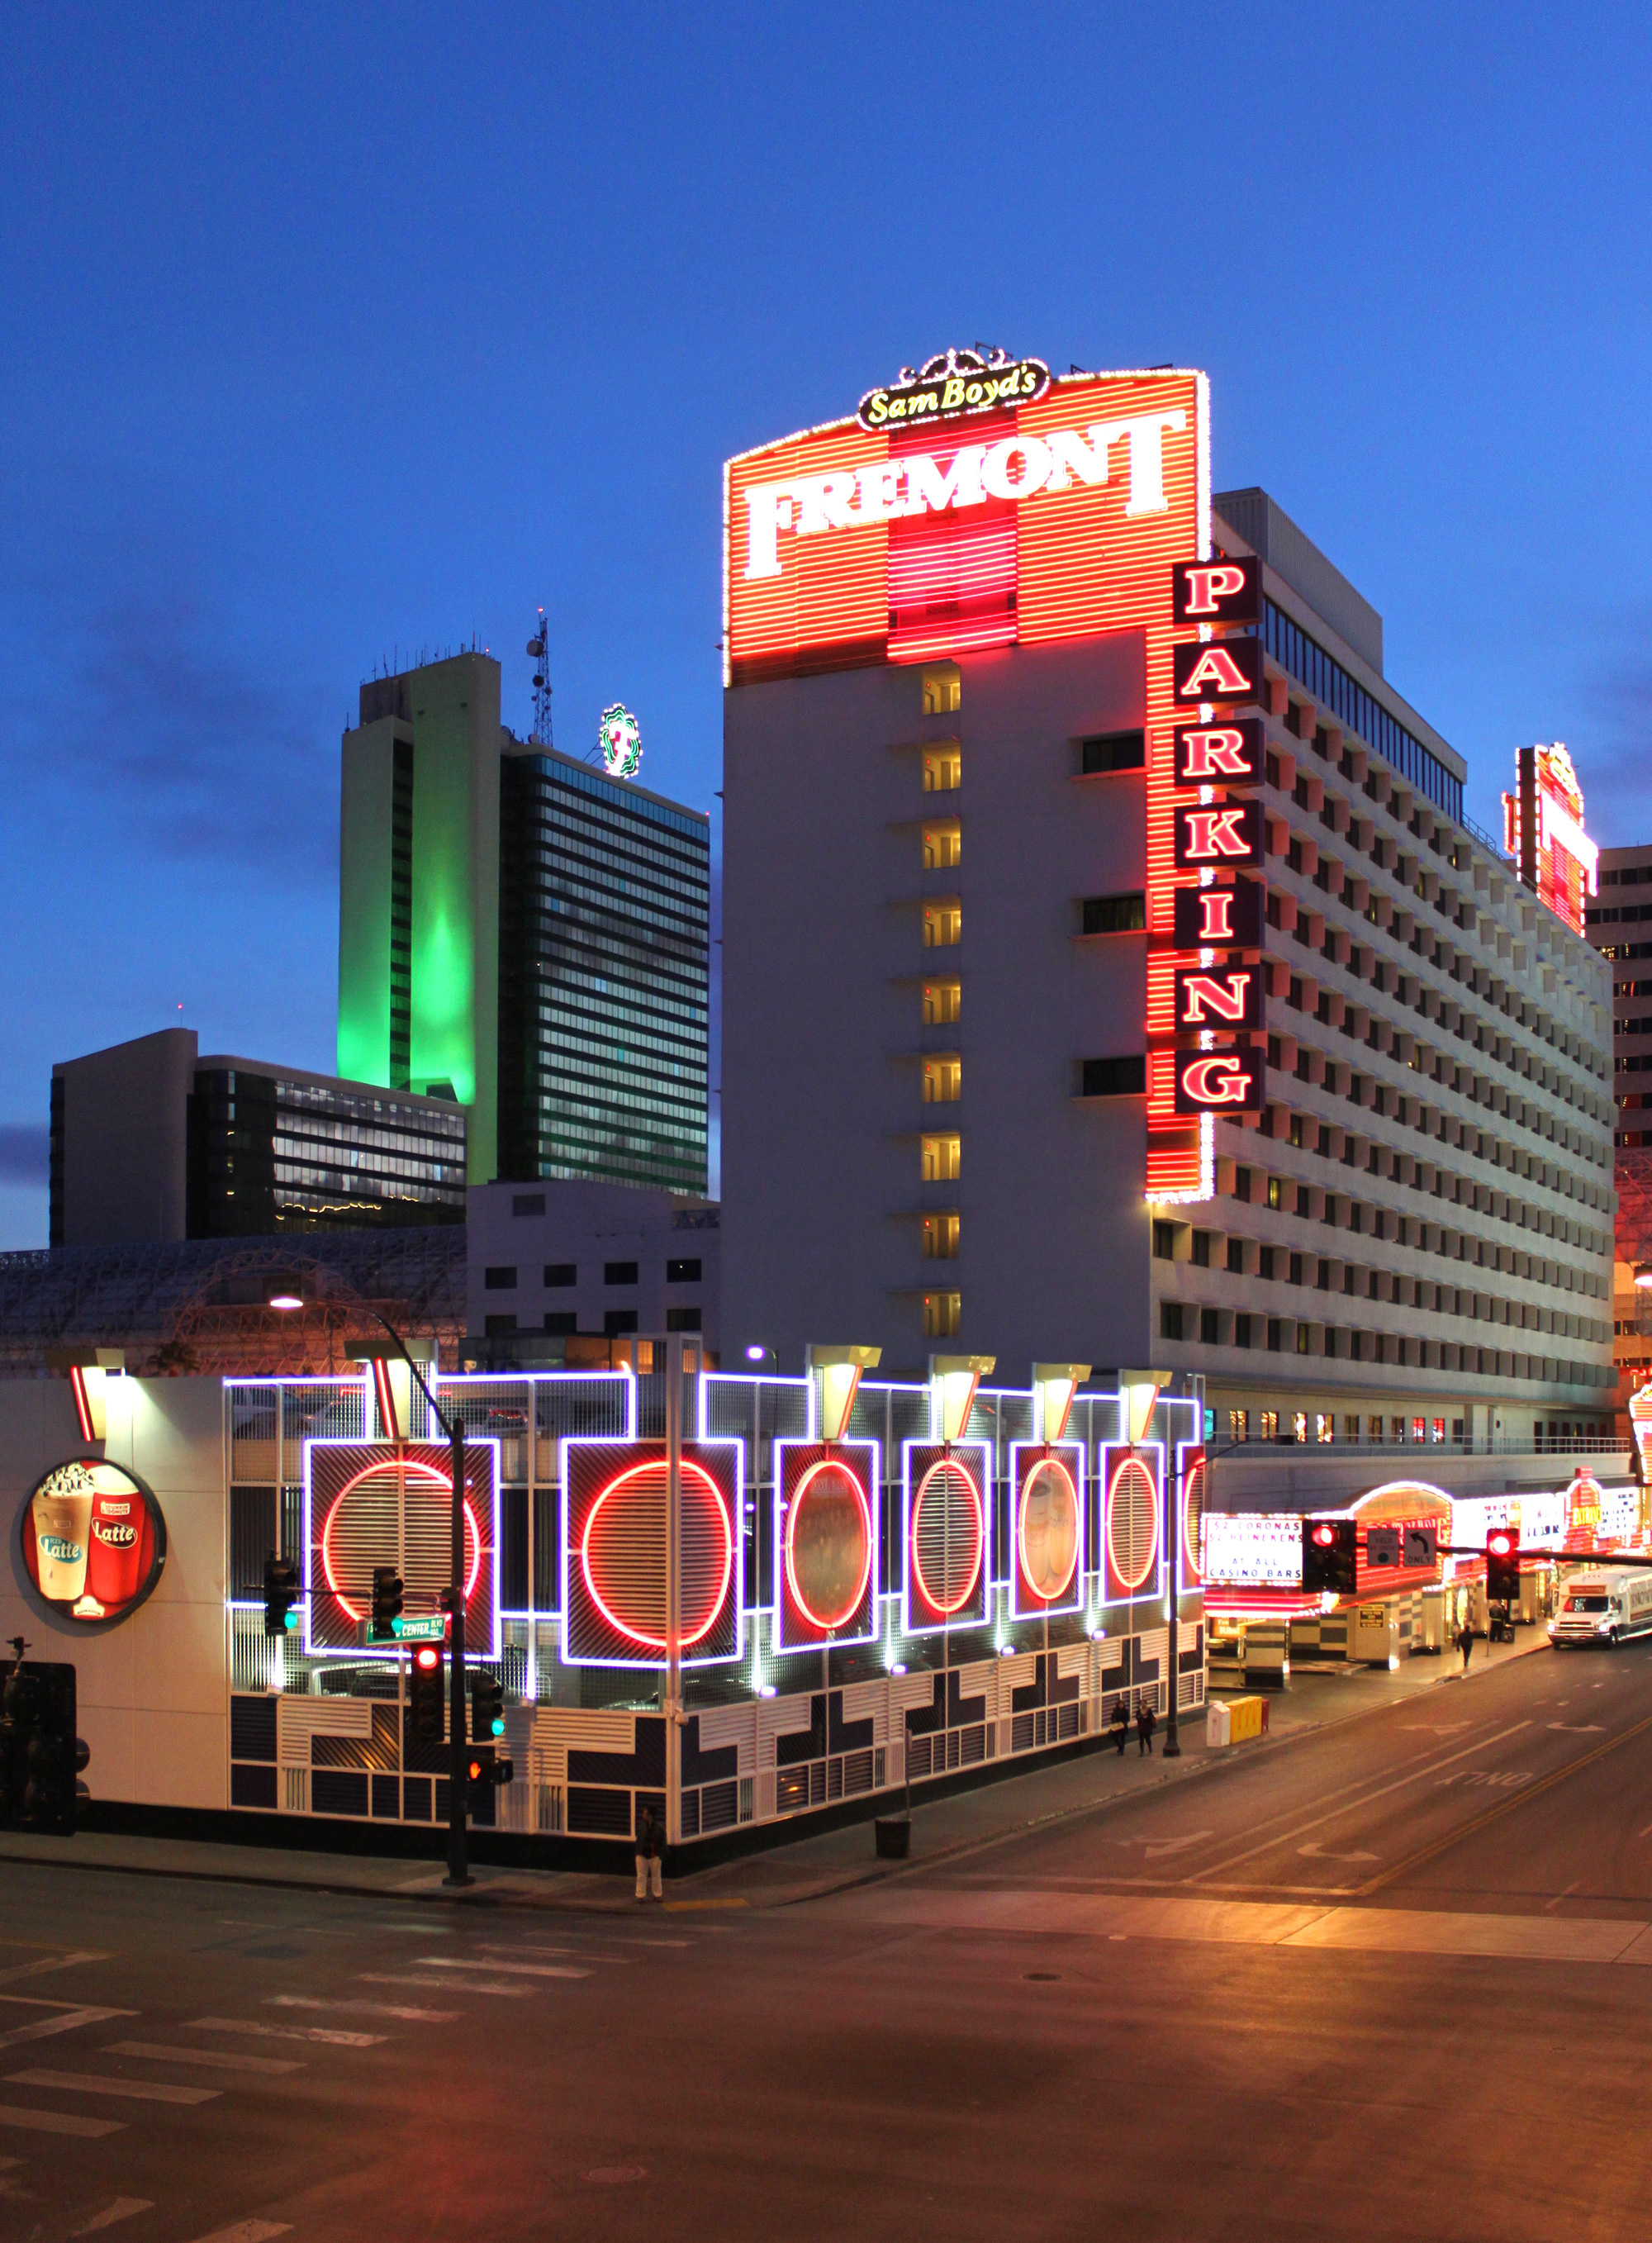 Daily neon fremont hotel casino in downtown las vegas for Daily hotel